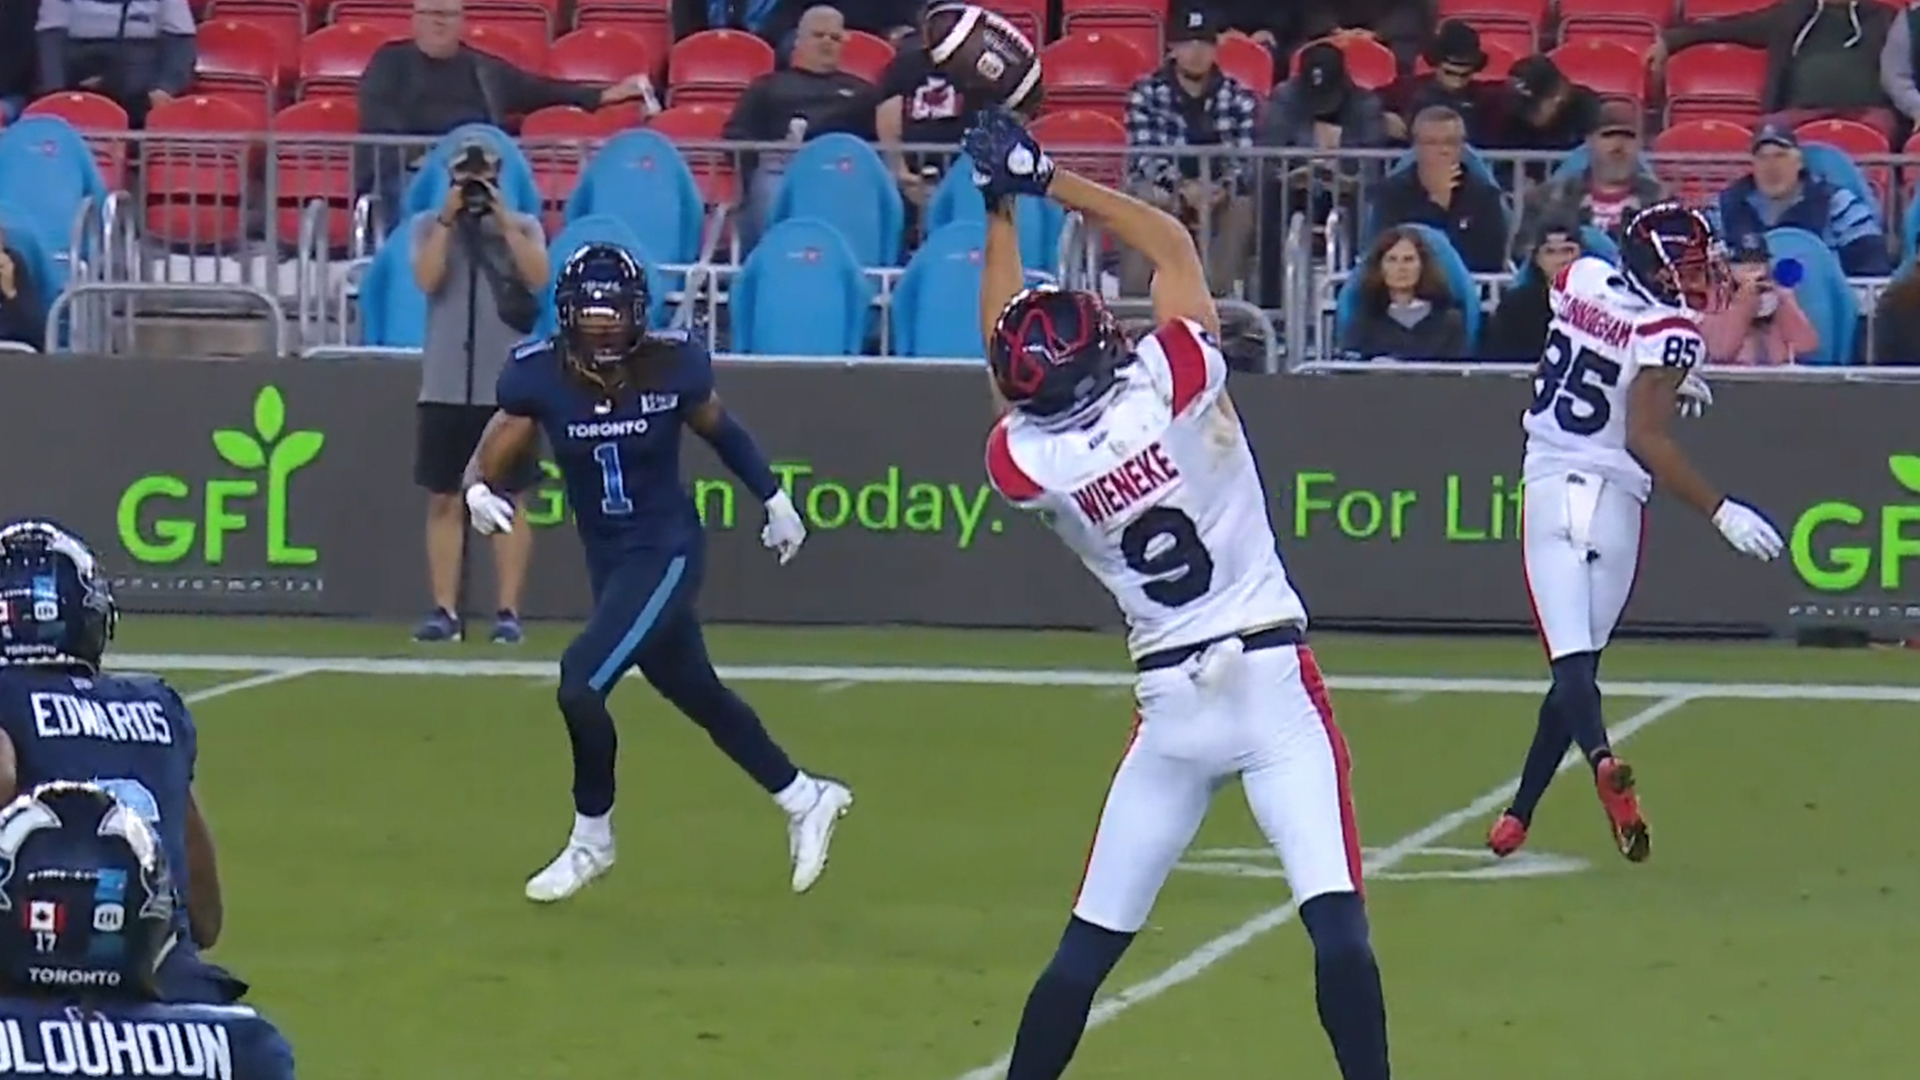 Wieneke Sets Up Late TD With A Wild, Acrobatic Catch